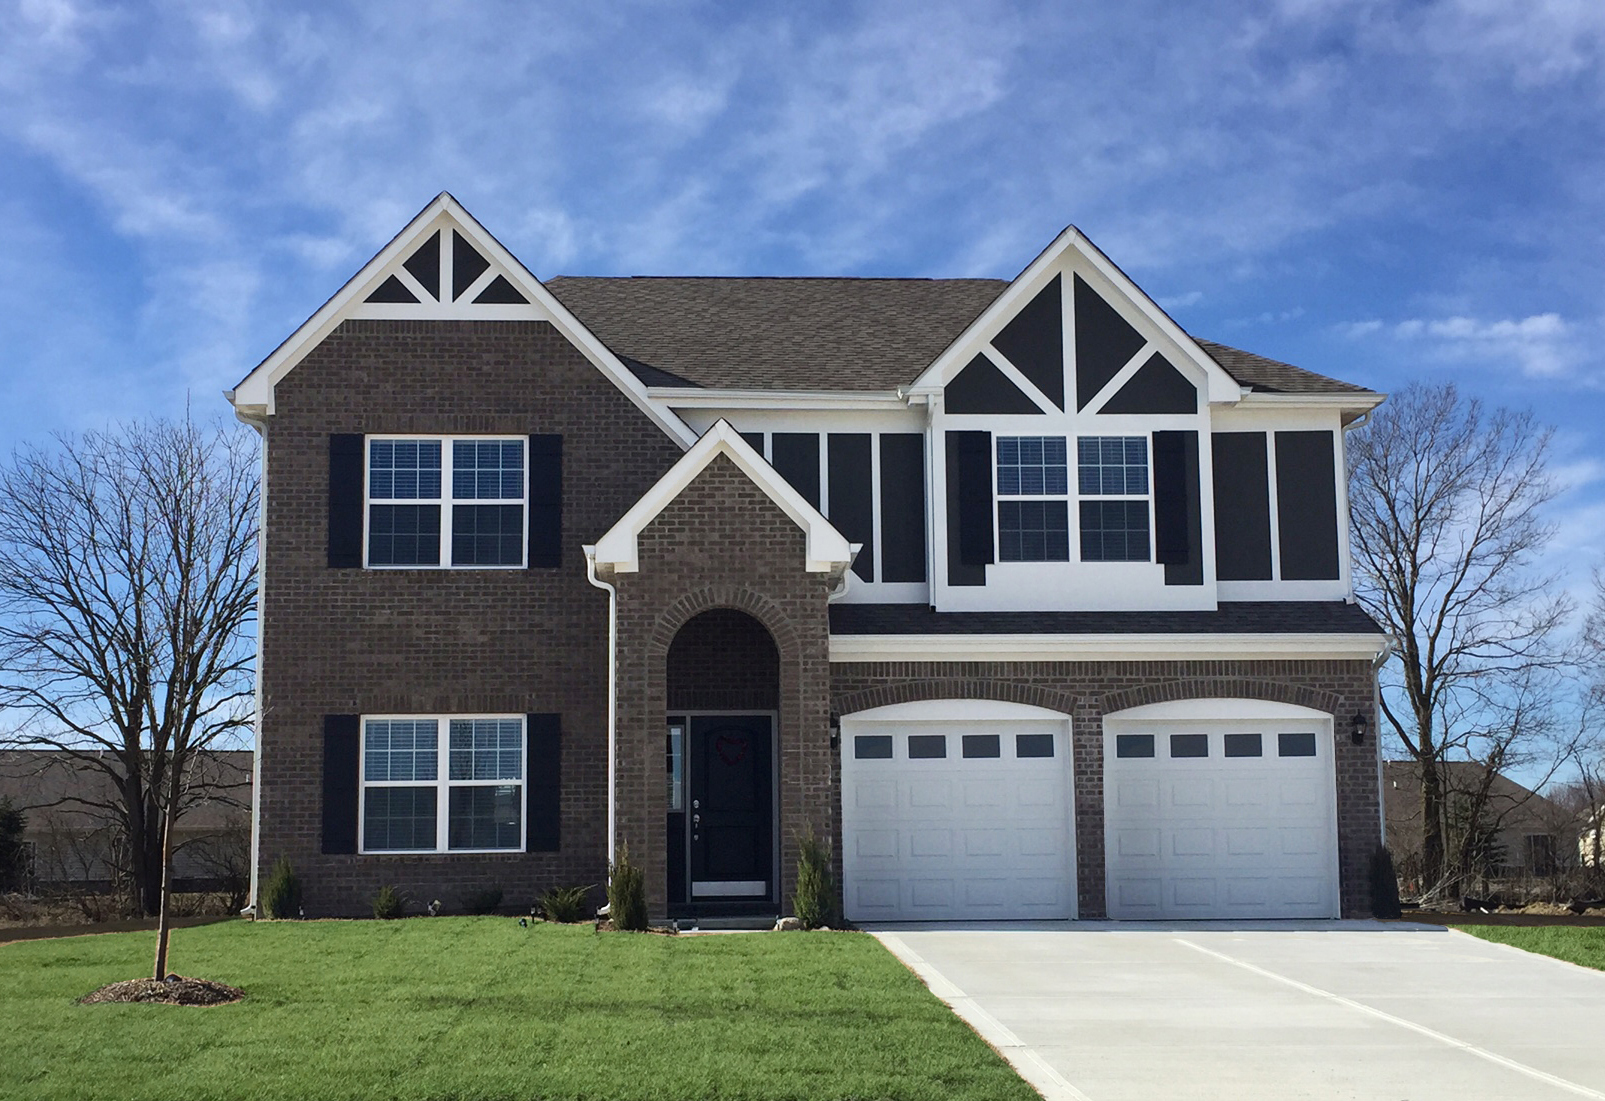 Founded in 1994 by President Curtis Rector, Arbor takes pride in being the largest locally-owned and operated home builder in Indianapolis, known for their high-quality, entry-level homes.